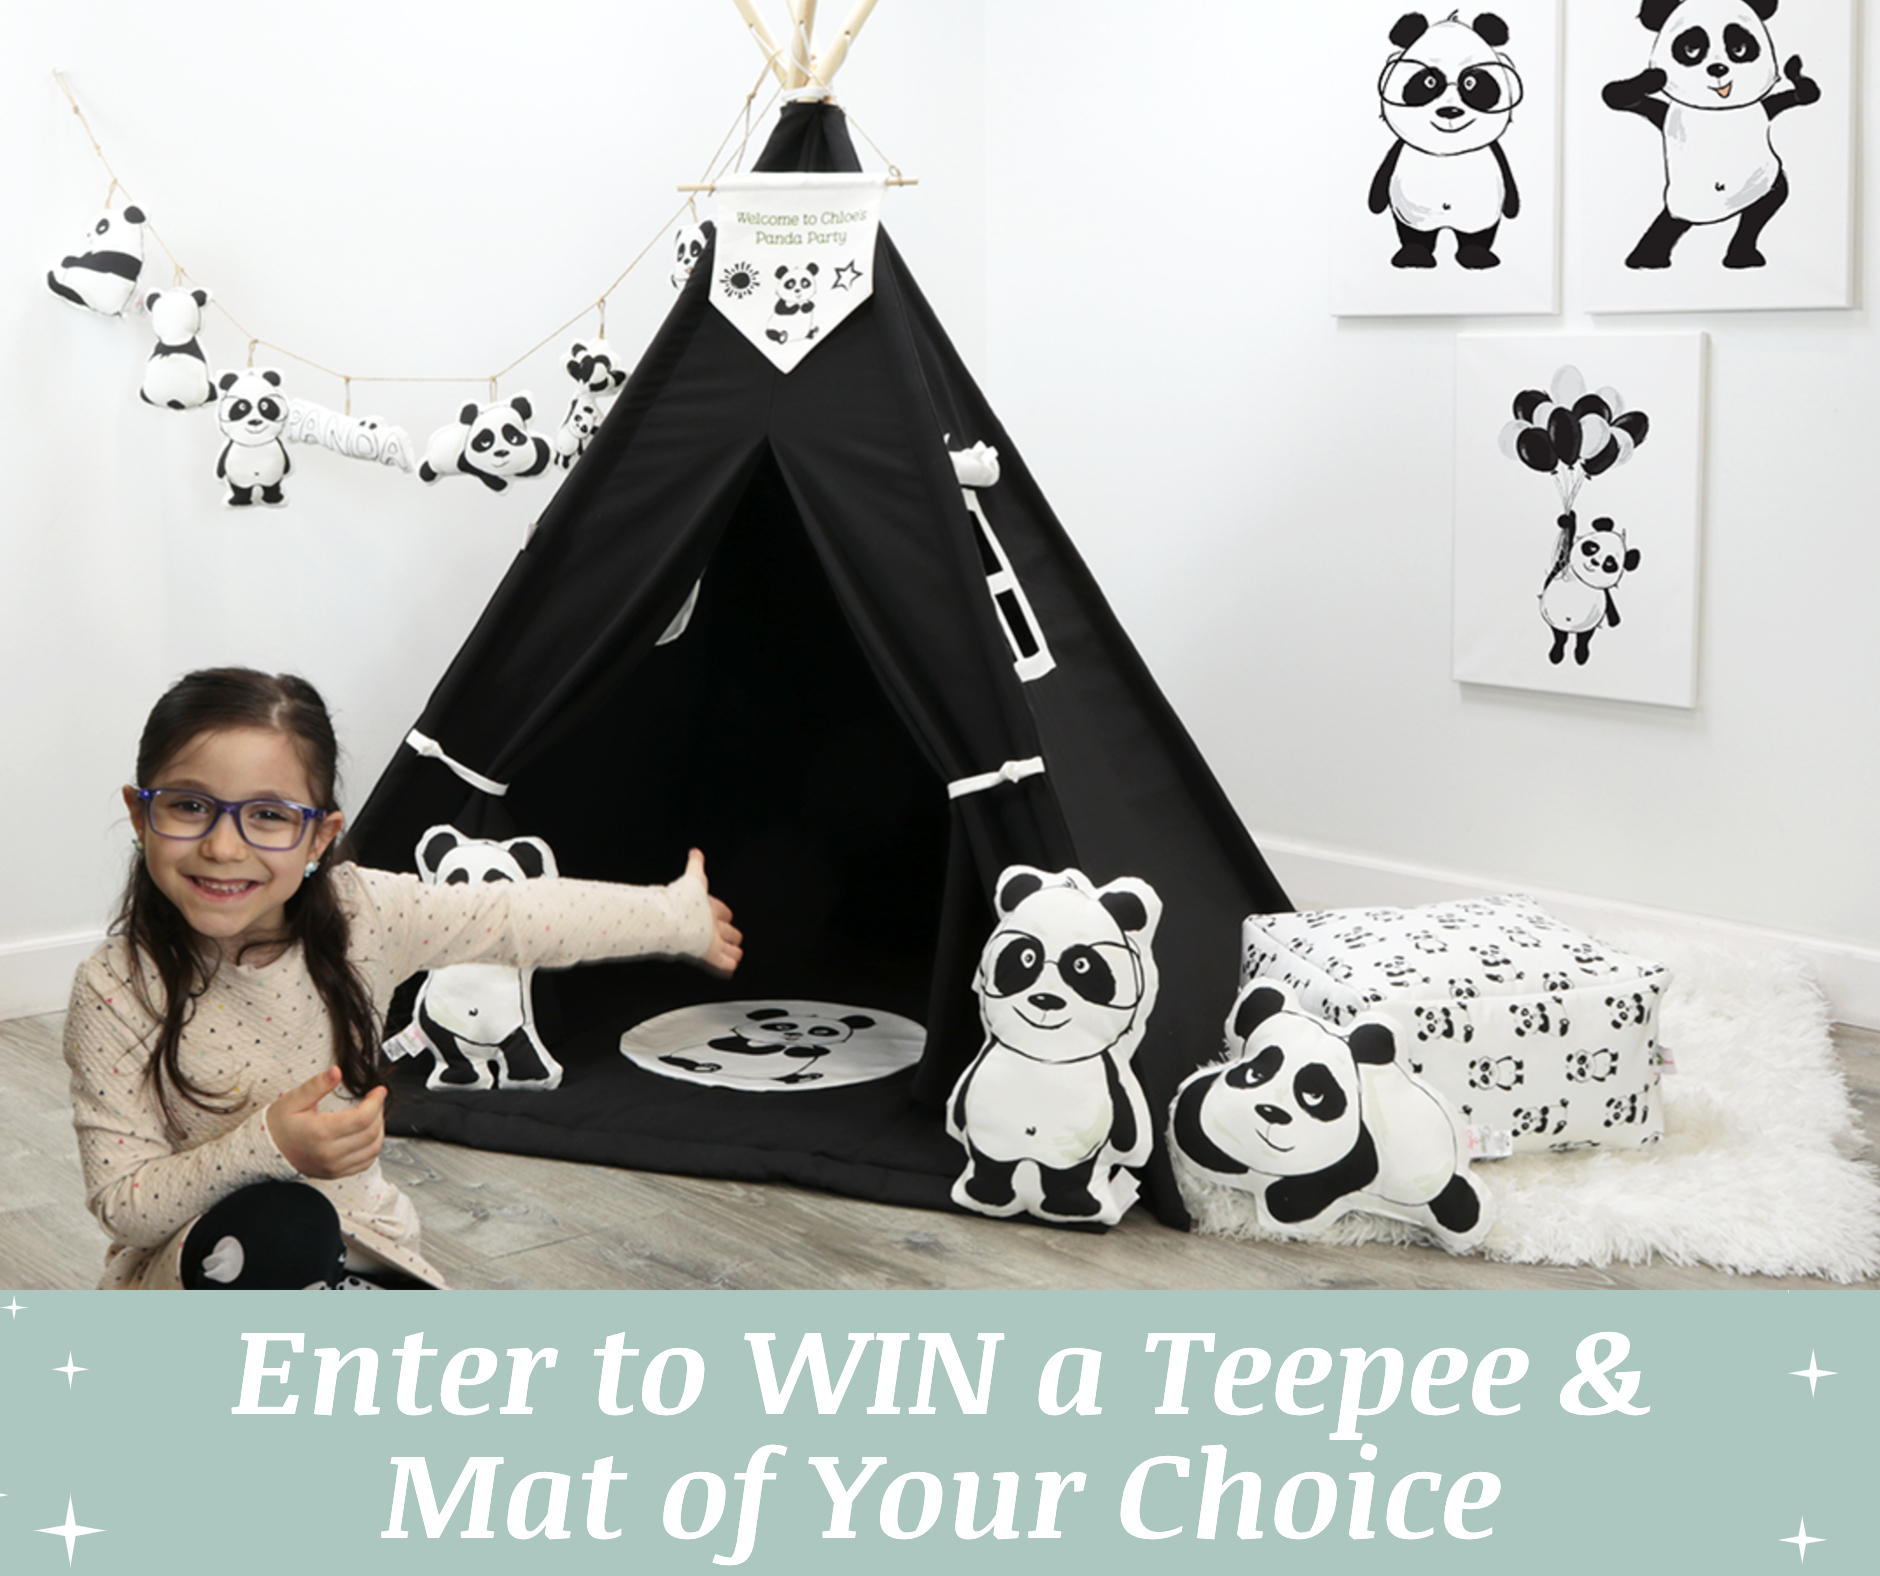 Enter for a chance to win a Teepee and Mat of your choice! Valued at $238! Giveaway Image